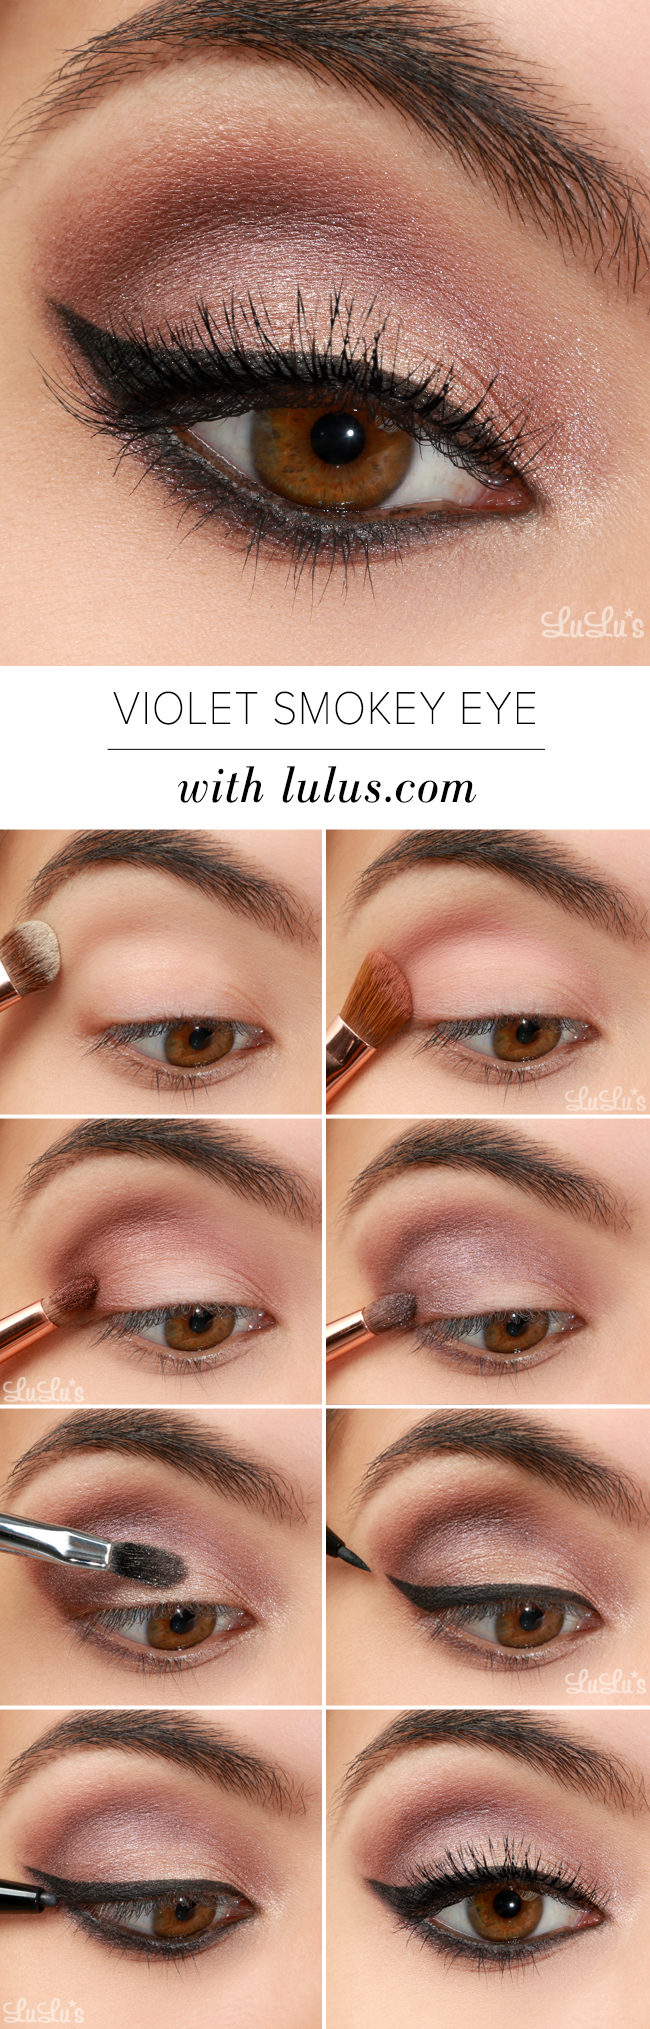 Lulus How To Violet Smokey Eye Makeup Tutorial Lulus Fashion Blog